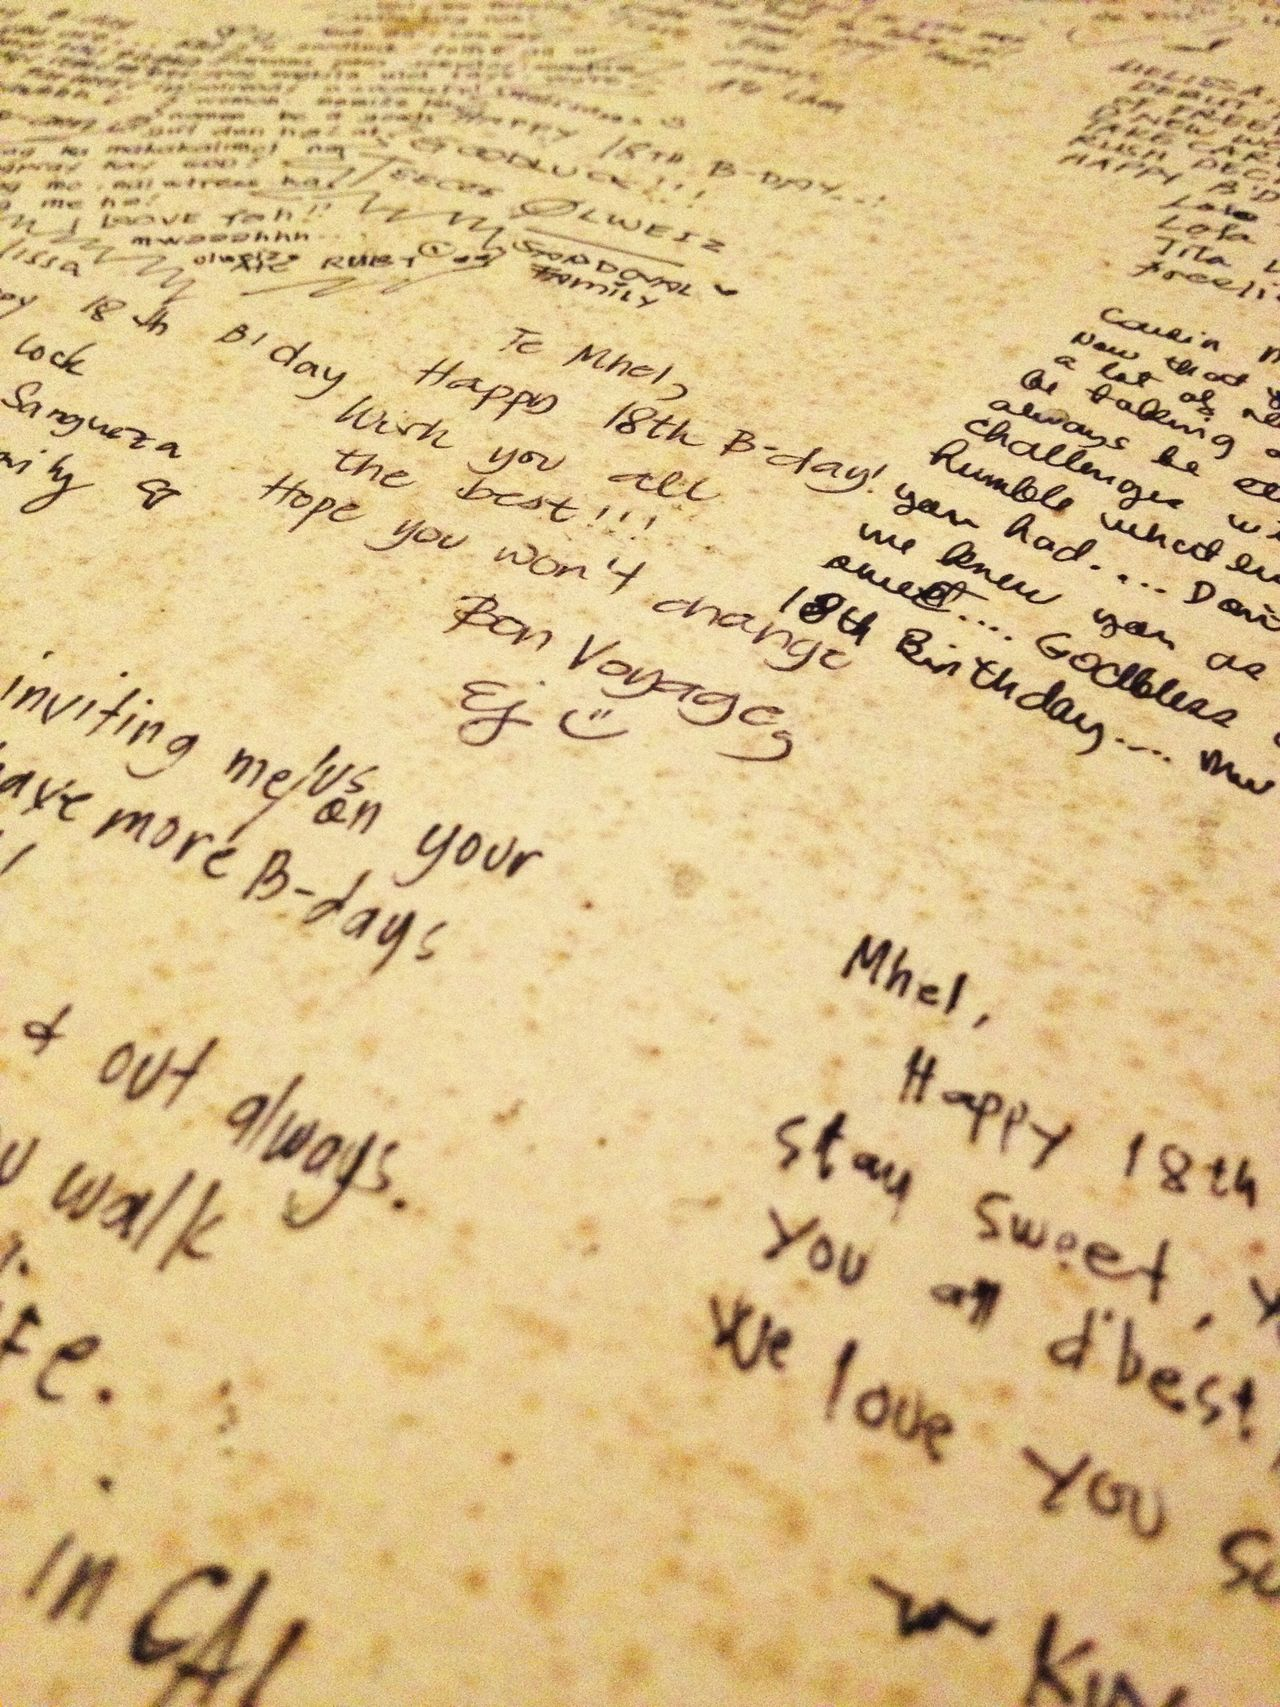 Cursive Writing Note OldPaper Yellowish Letter Filipino English BlackInk IPhone4s IPhoneography Spots Unorganized Wording Indoors  Birthday 18th